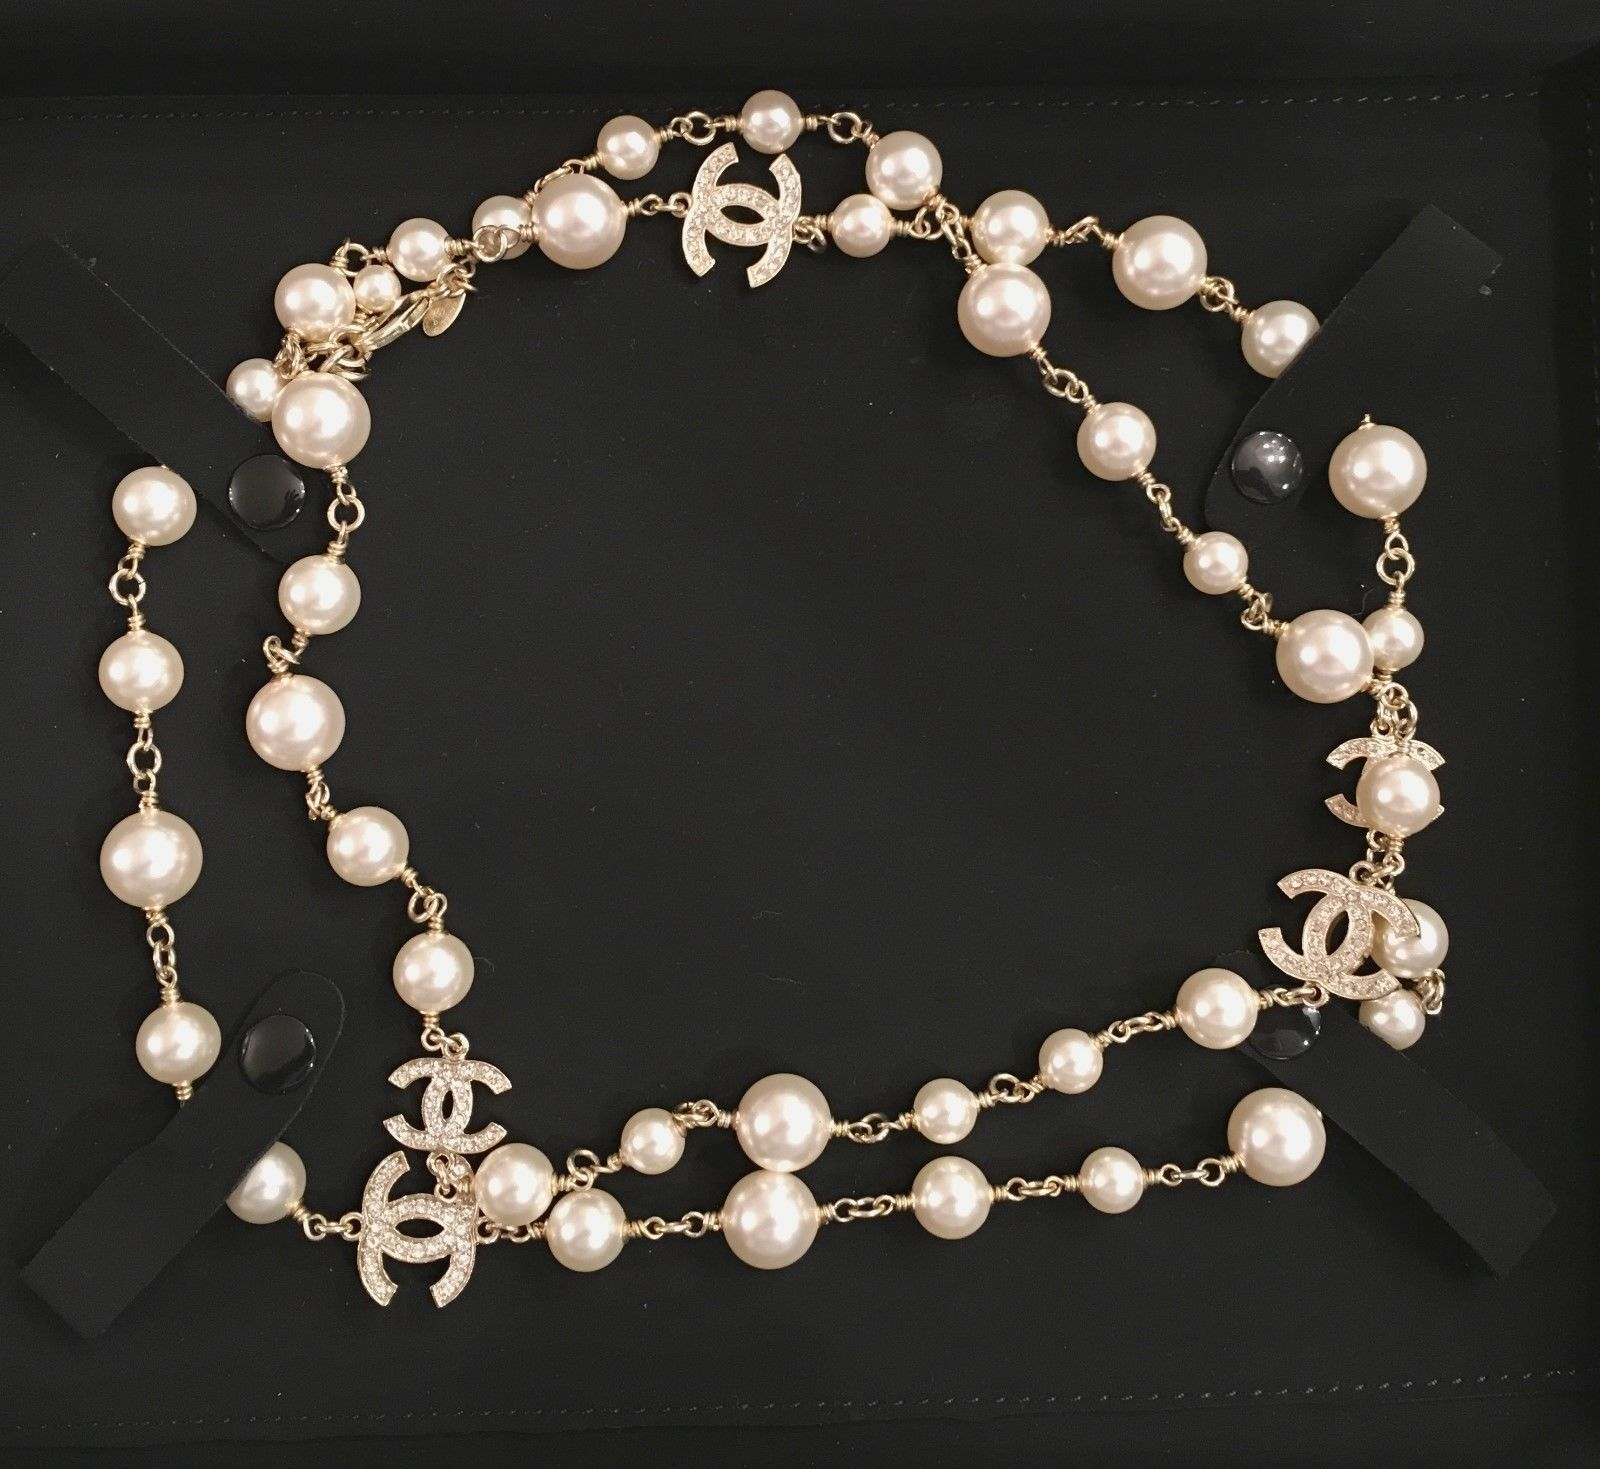 Chanel classic pearl necklace